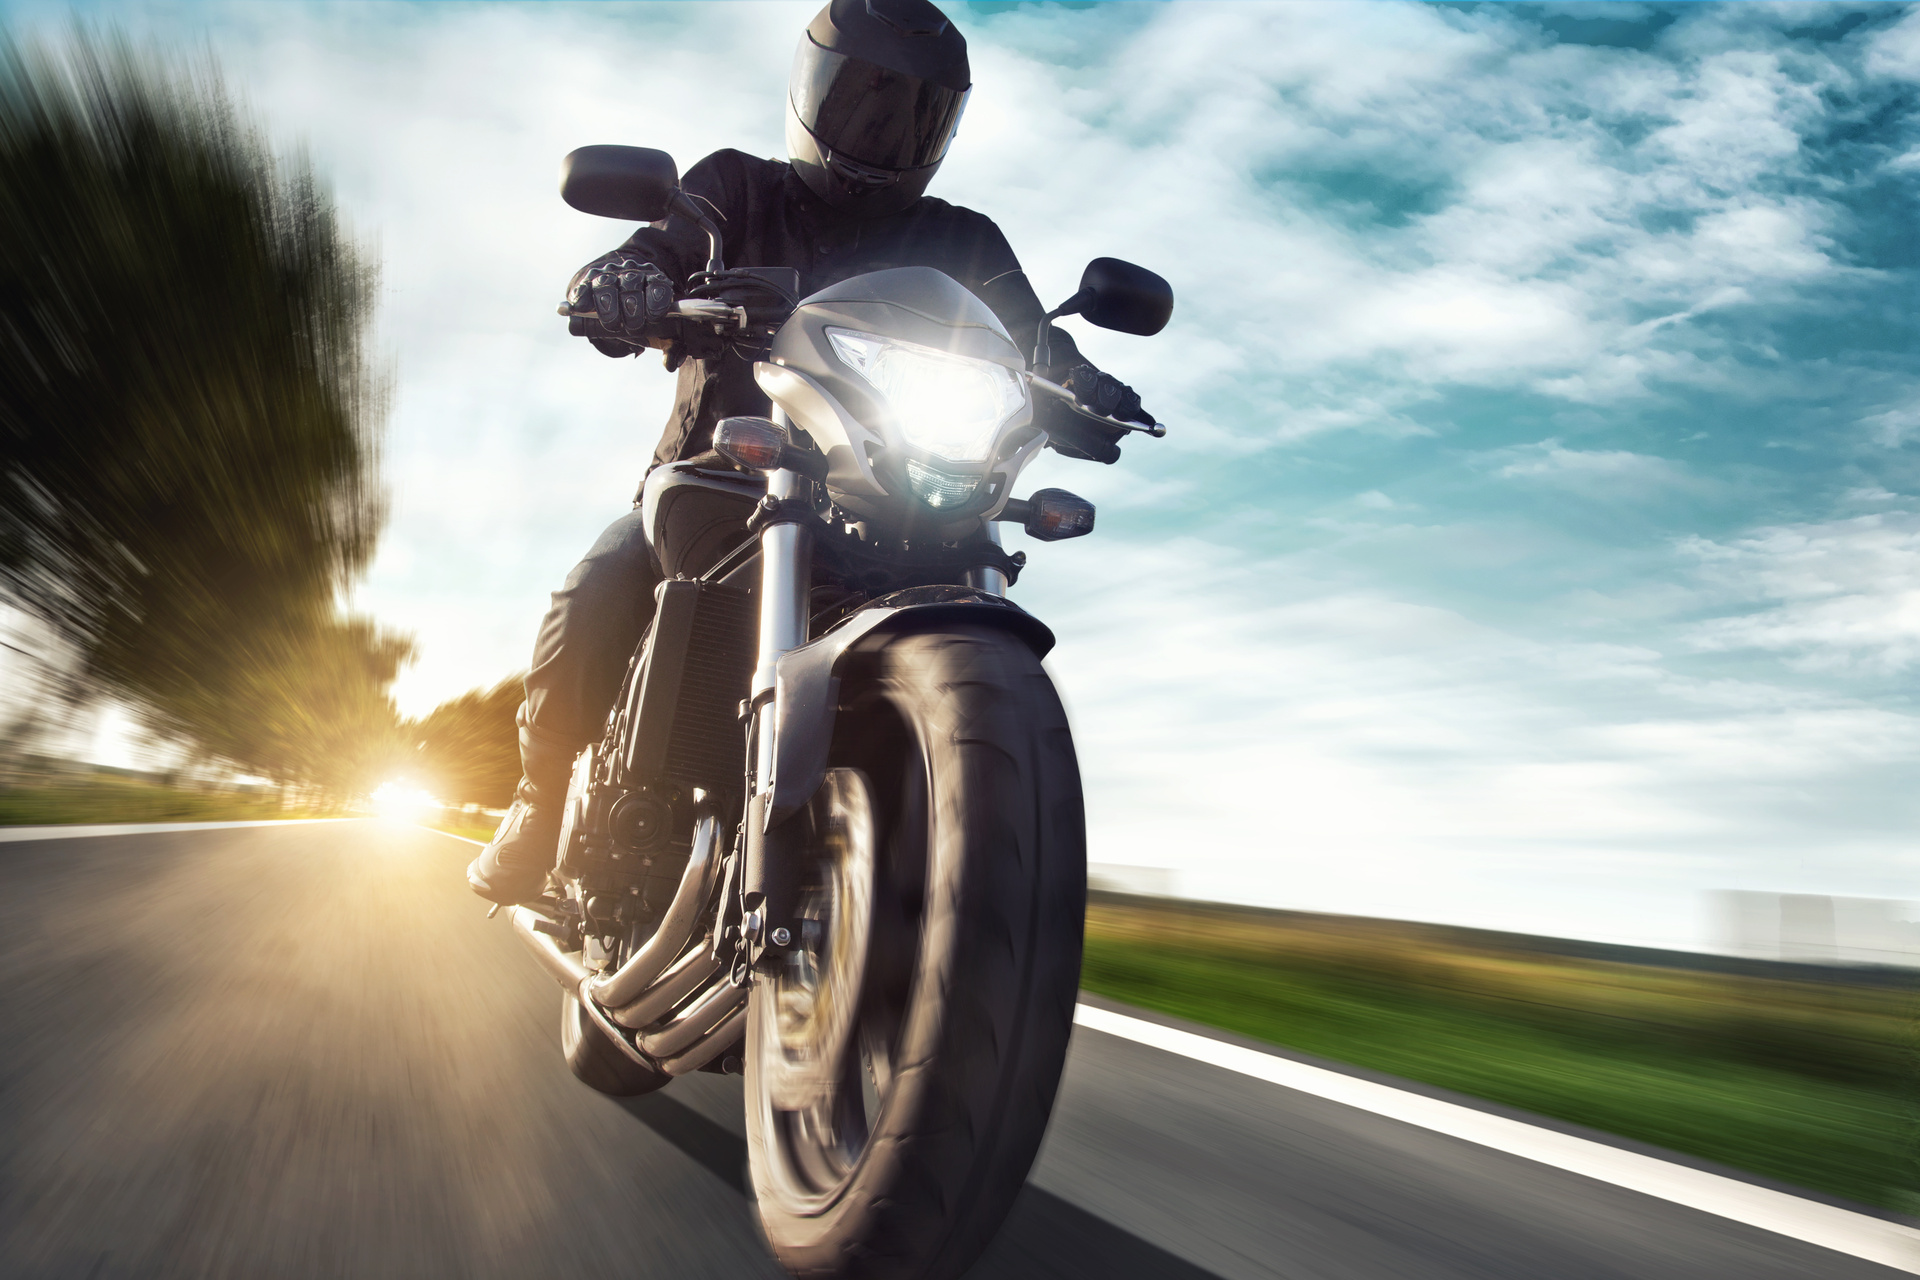 Motorcycle insurance in New Bern, NC